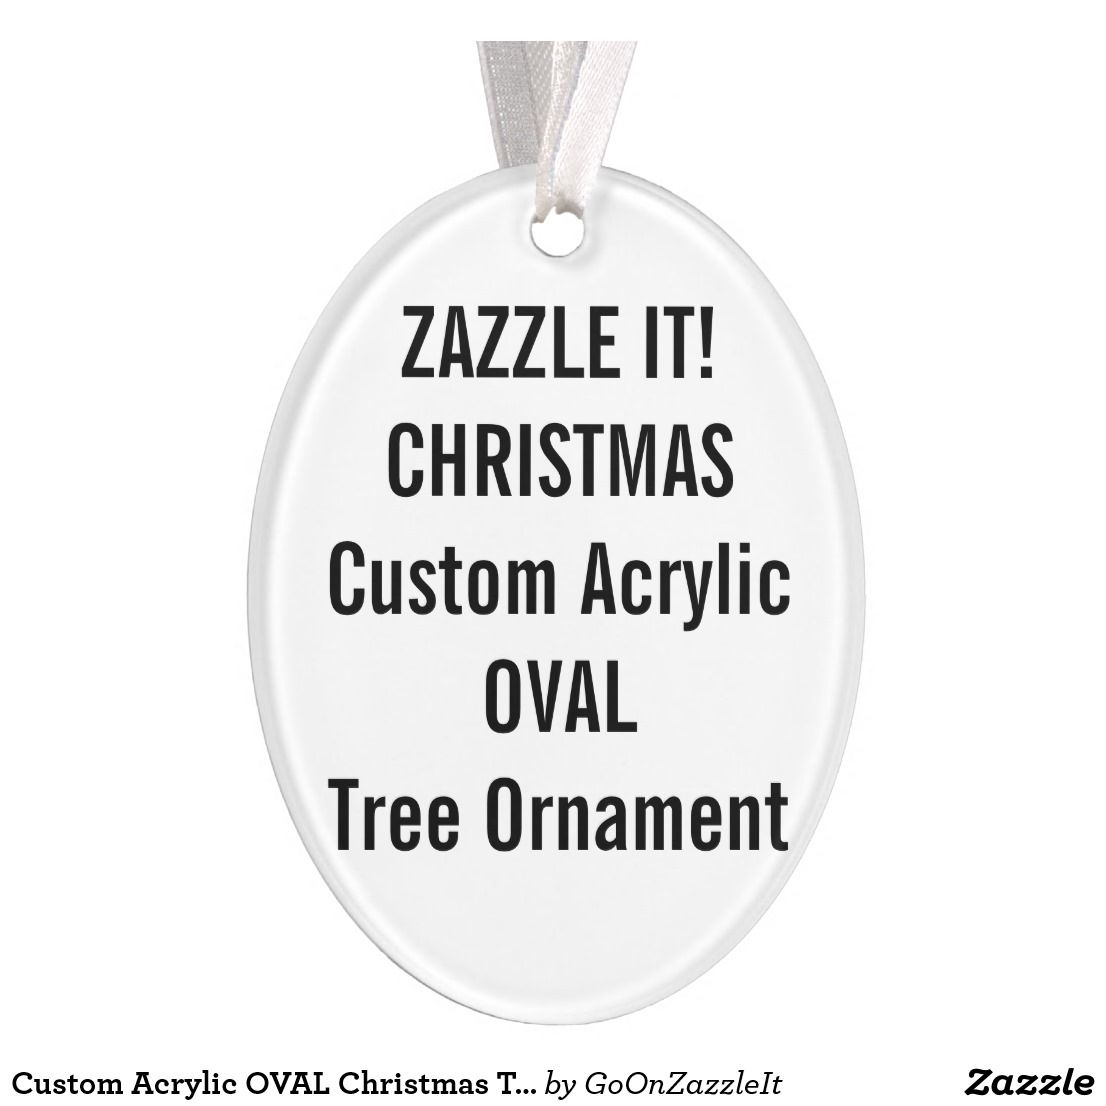 Blank ornaments to personalize - Custom Acrylic Oval Christmas Tree Ornament Blank